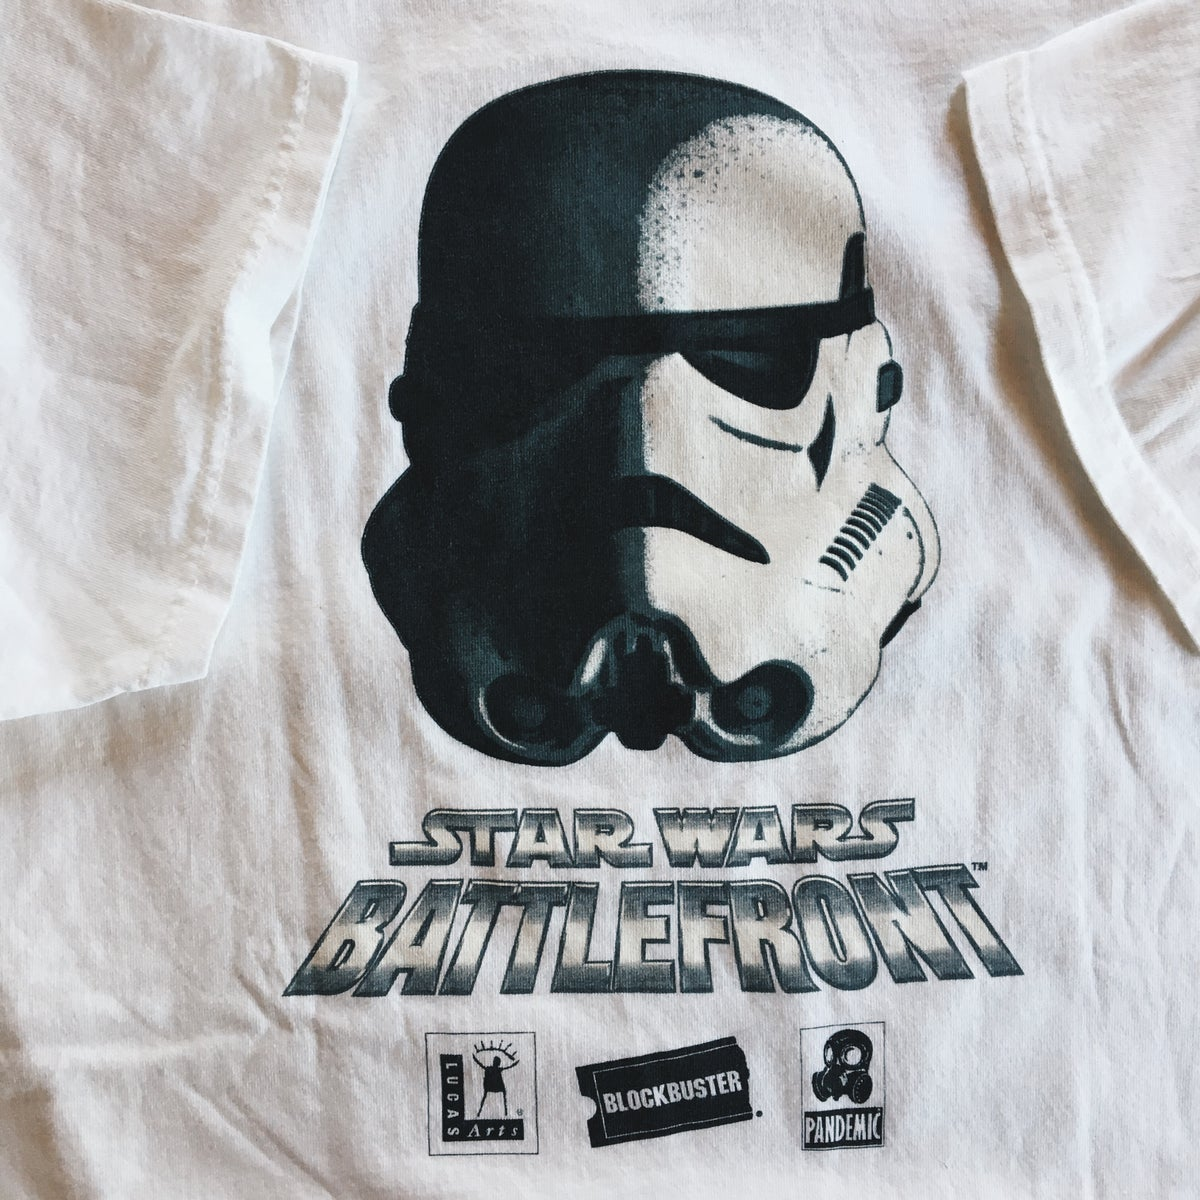 Image of Original 2004 Star Wars Battlefront Video Game Promo Tee.